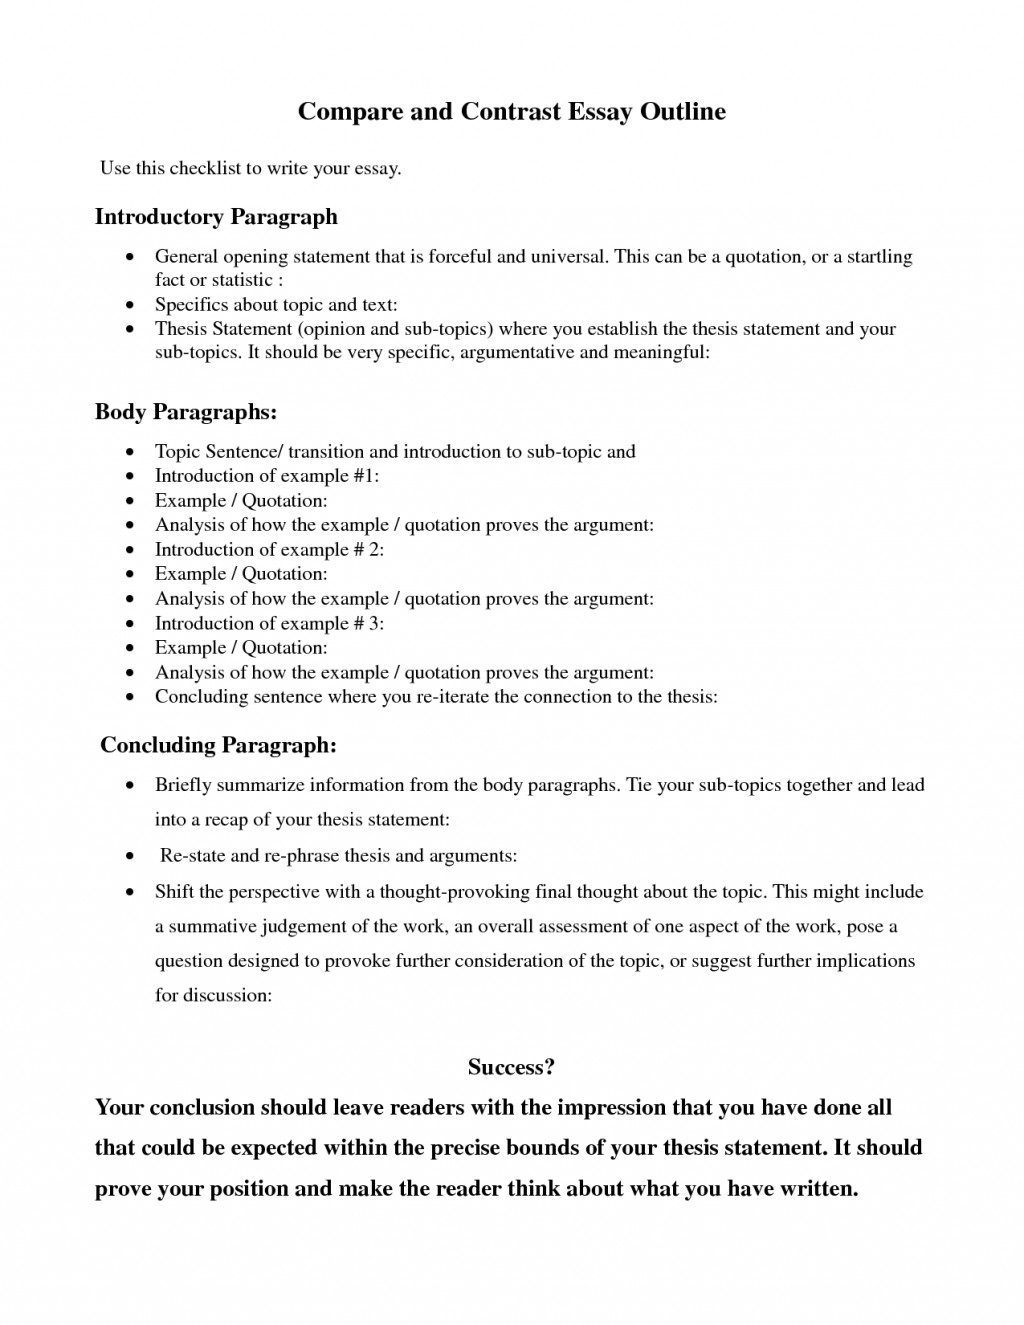 001 Essay Example How To Outline Compare And Awesome A Contrast Create An For Large